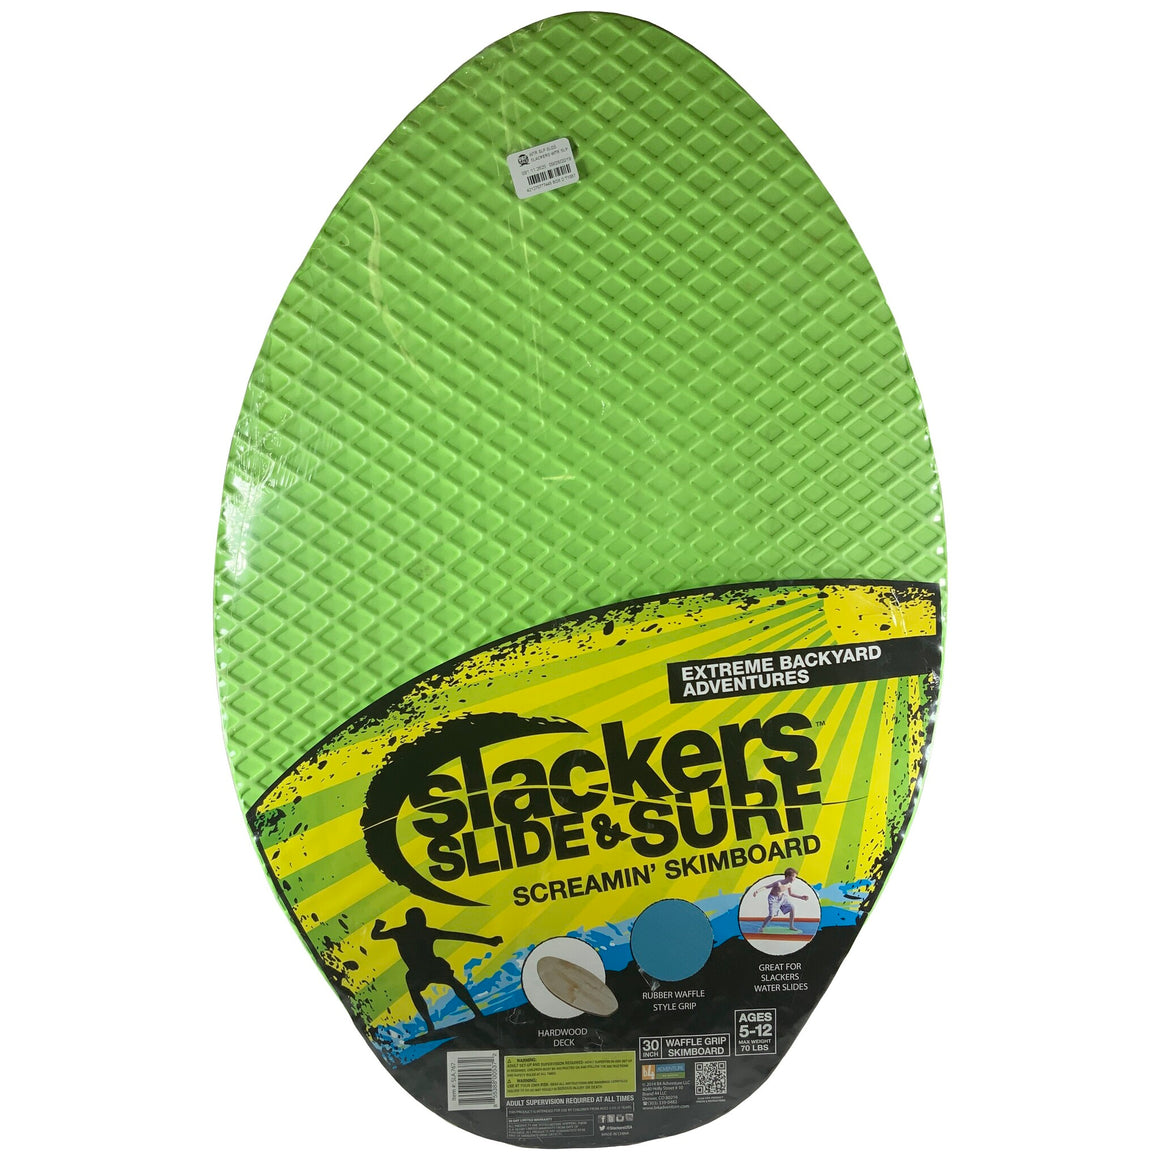 Slackers Slide And Surf - Screamin Skimboard